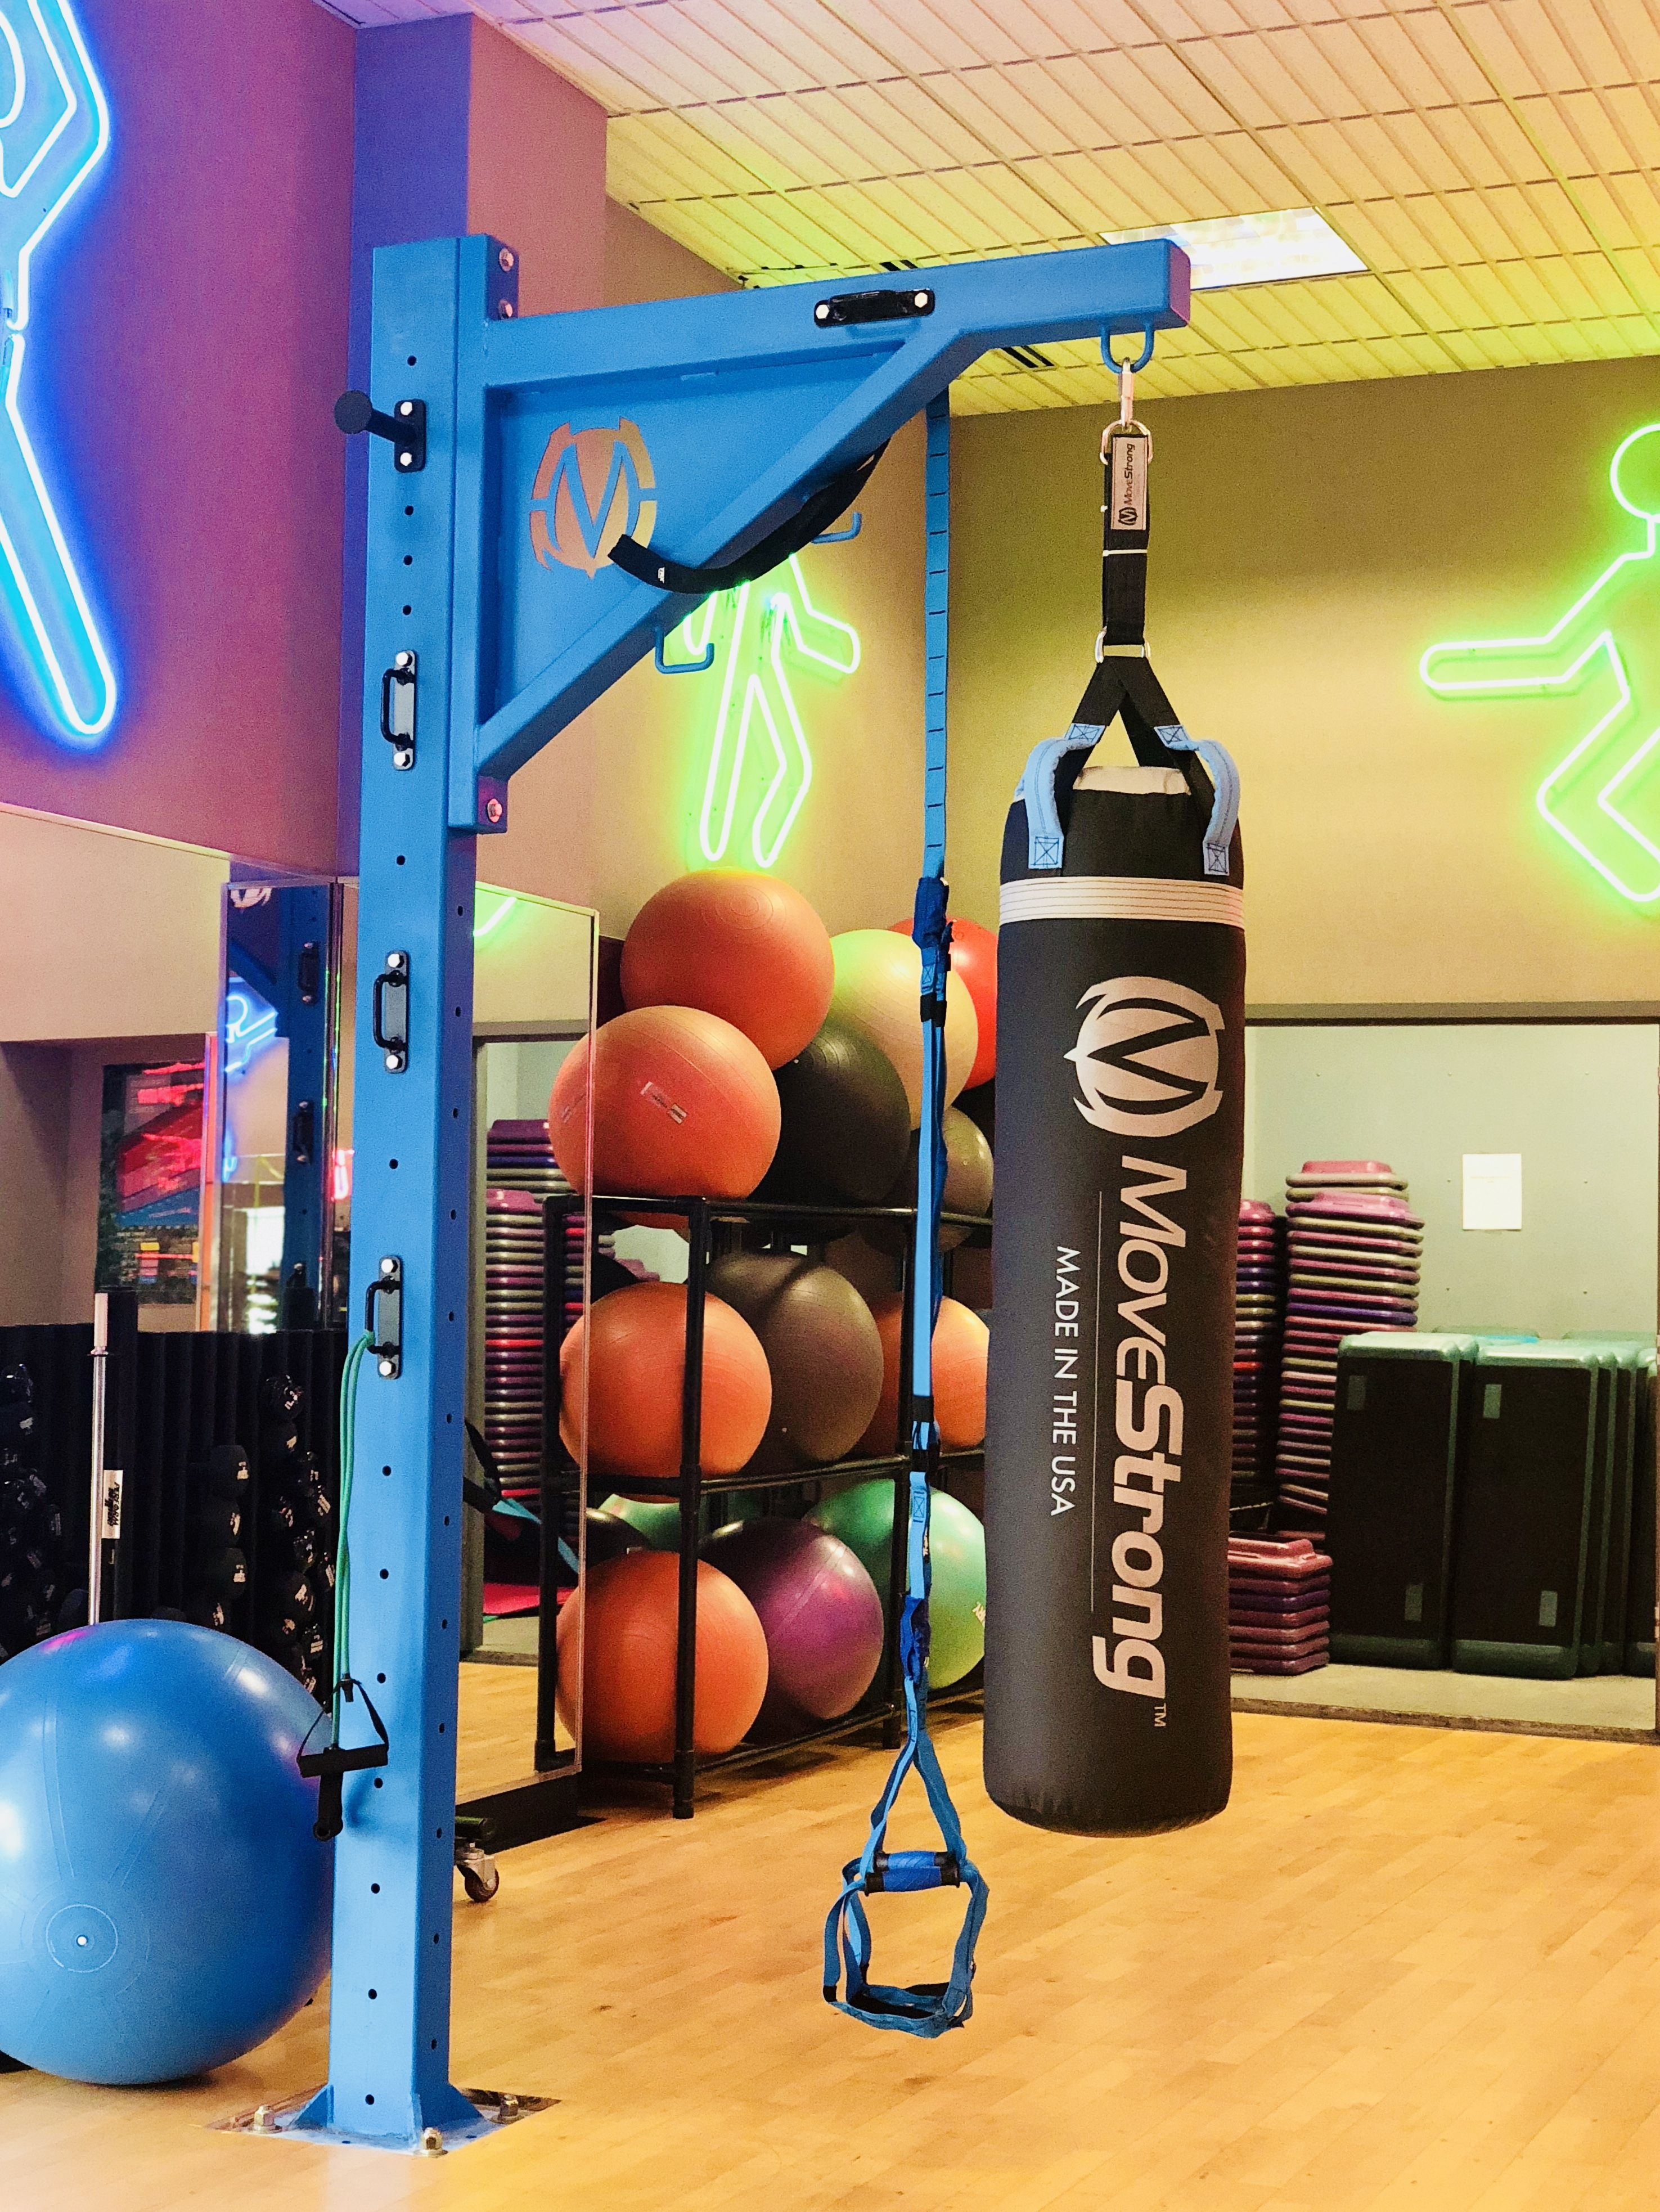 Movestrong Heavy Bag Stand And Functional Fitness Column Gym Design Equipment To Accommodate Boxing Kickboxing Bags Along With Suspension Training